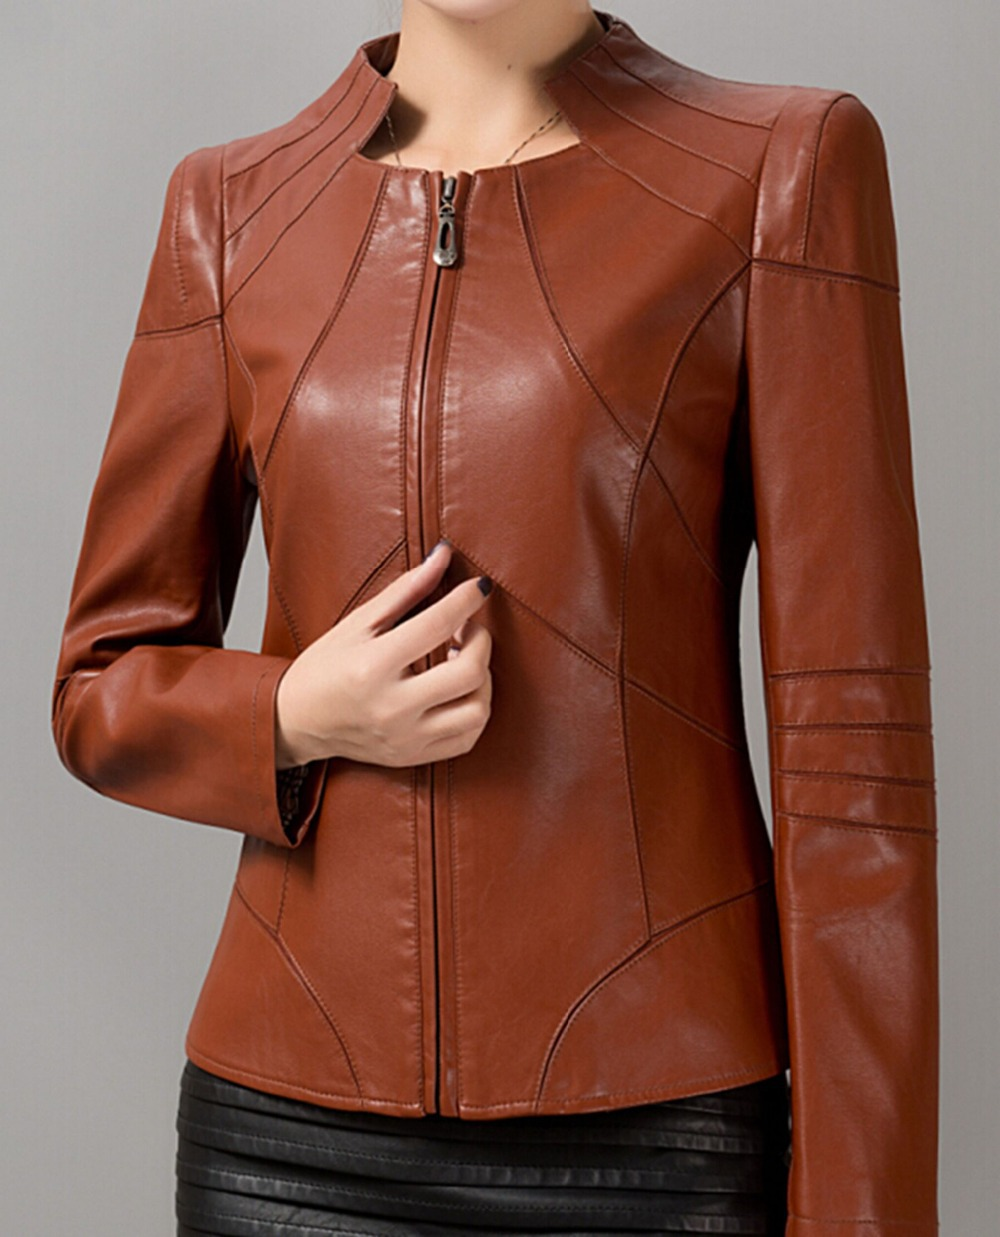 Images of Ladies Leather Coats - Reikian